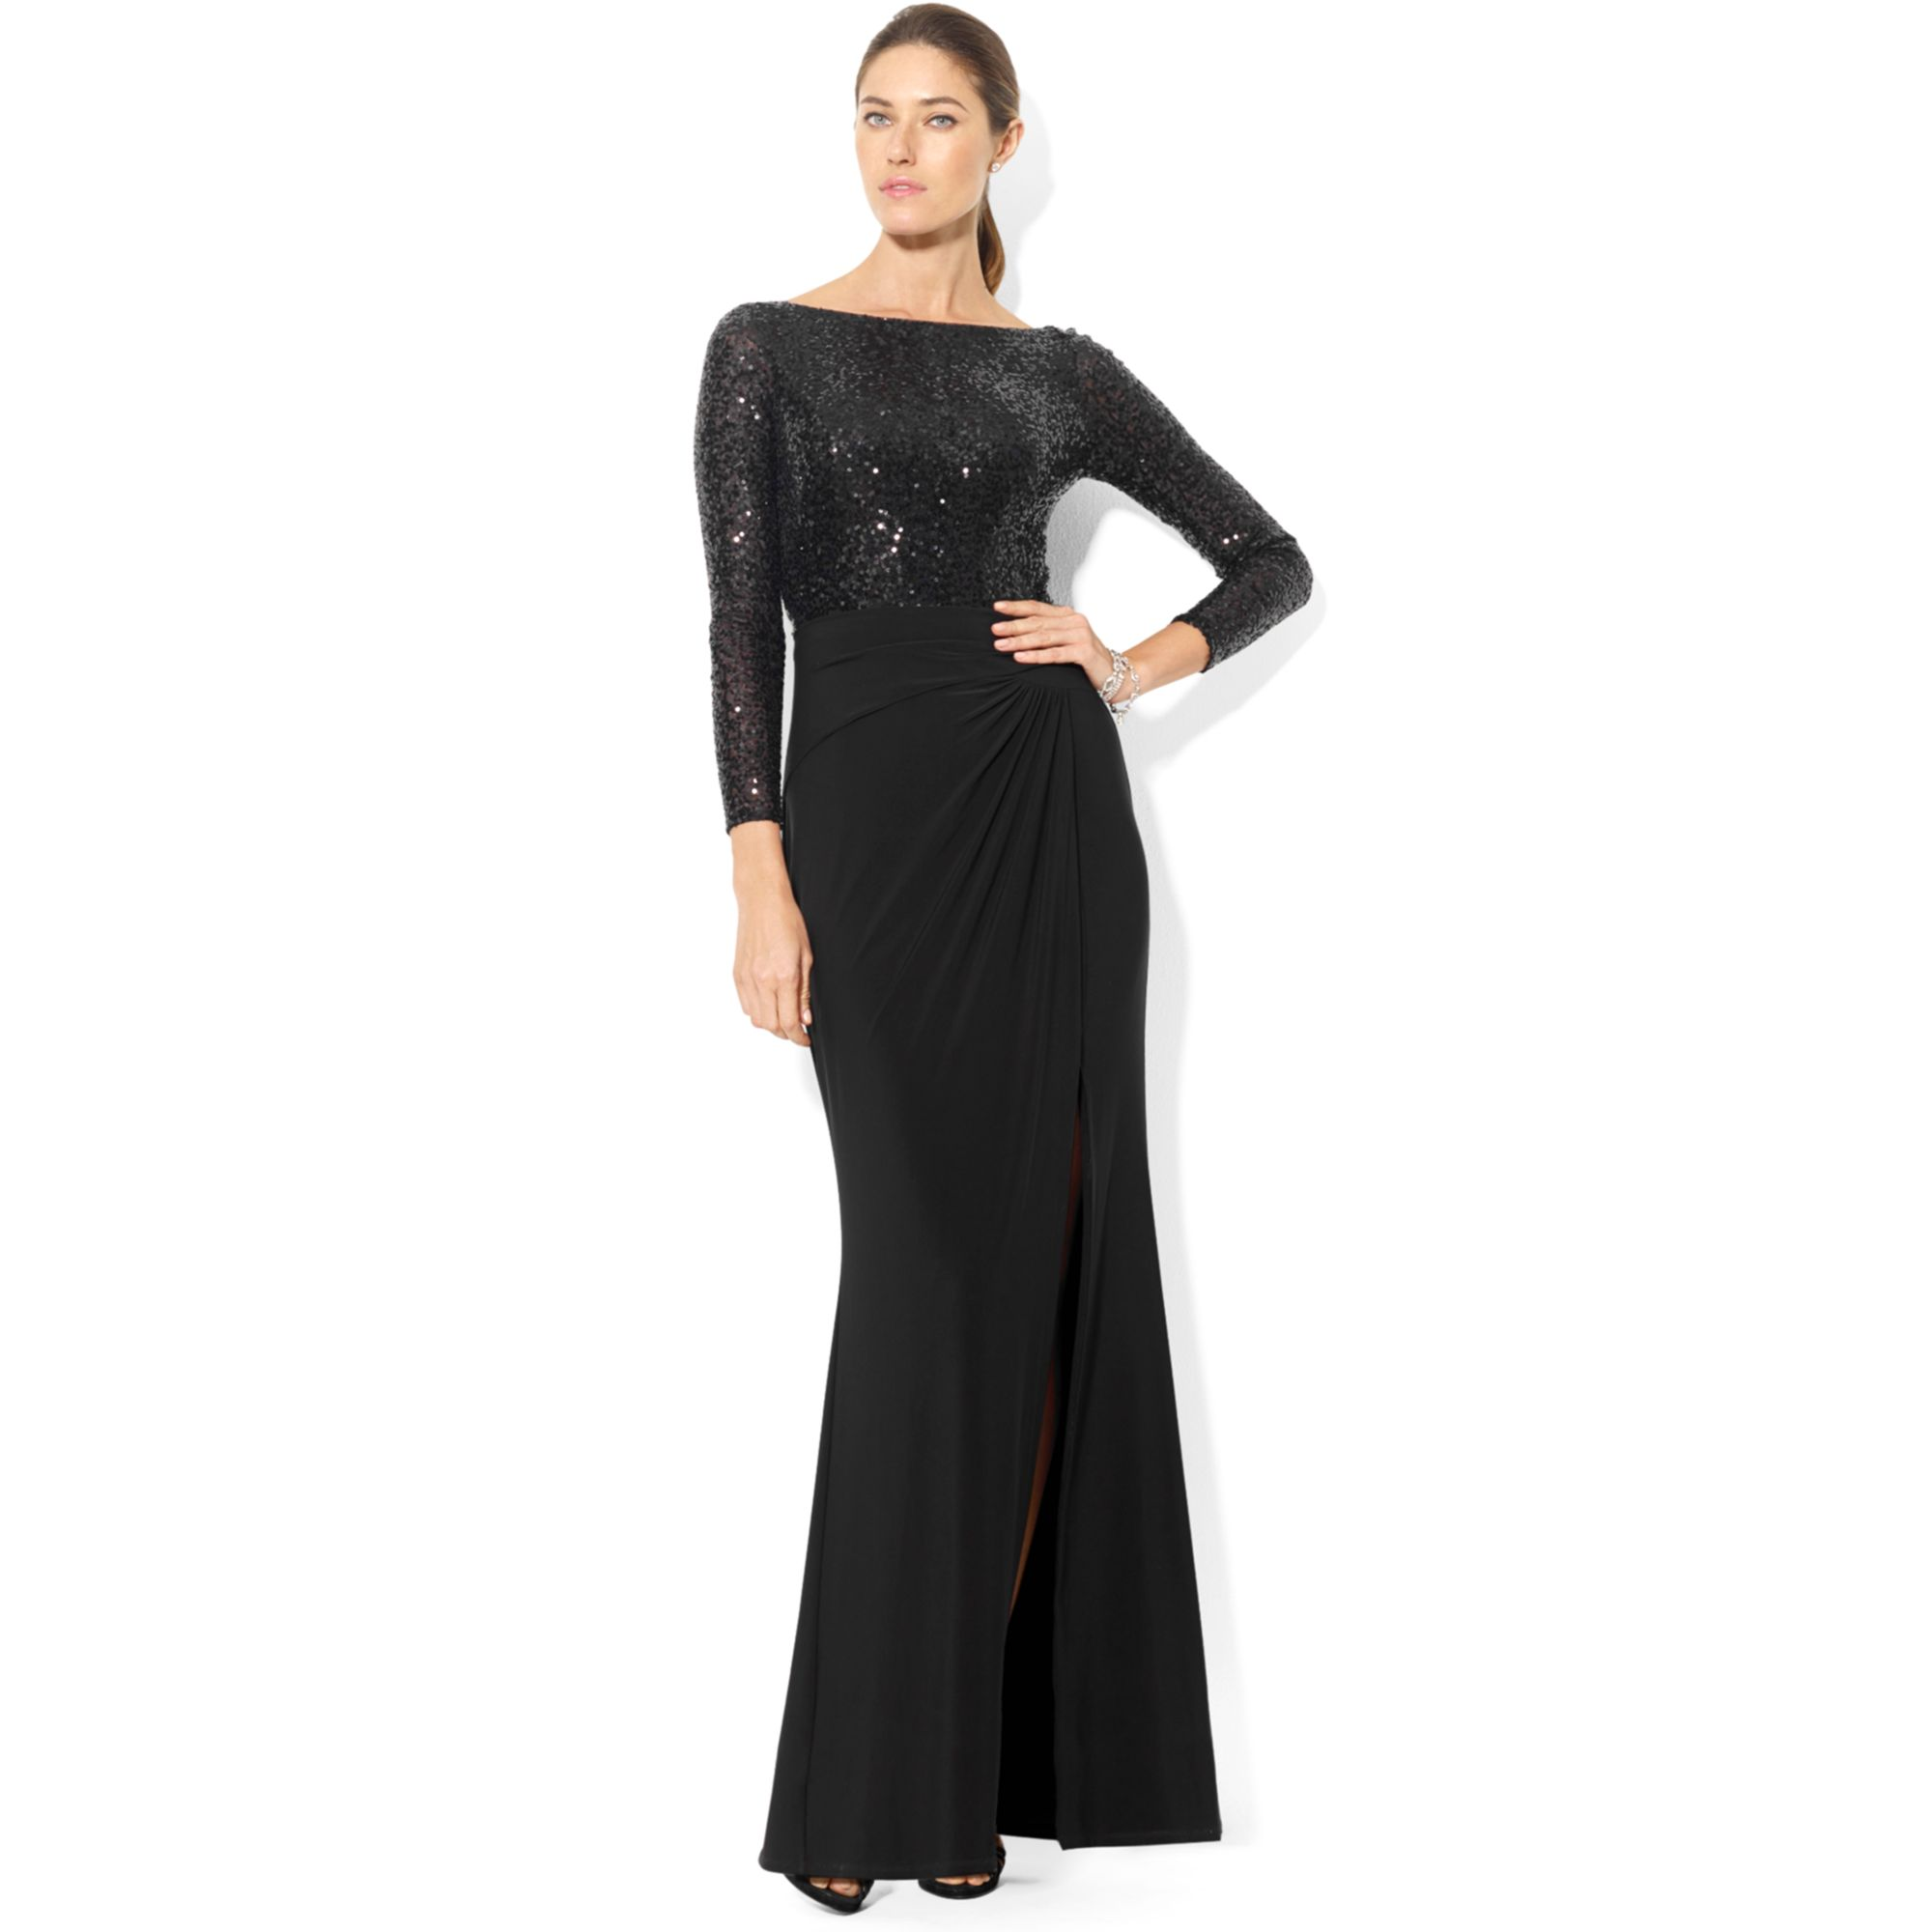 Lauren By Ralph Lauren Long Sleeve Sequin Gown In Black Lyst